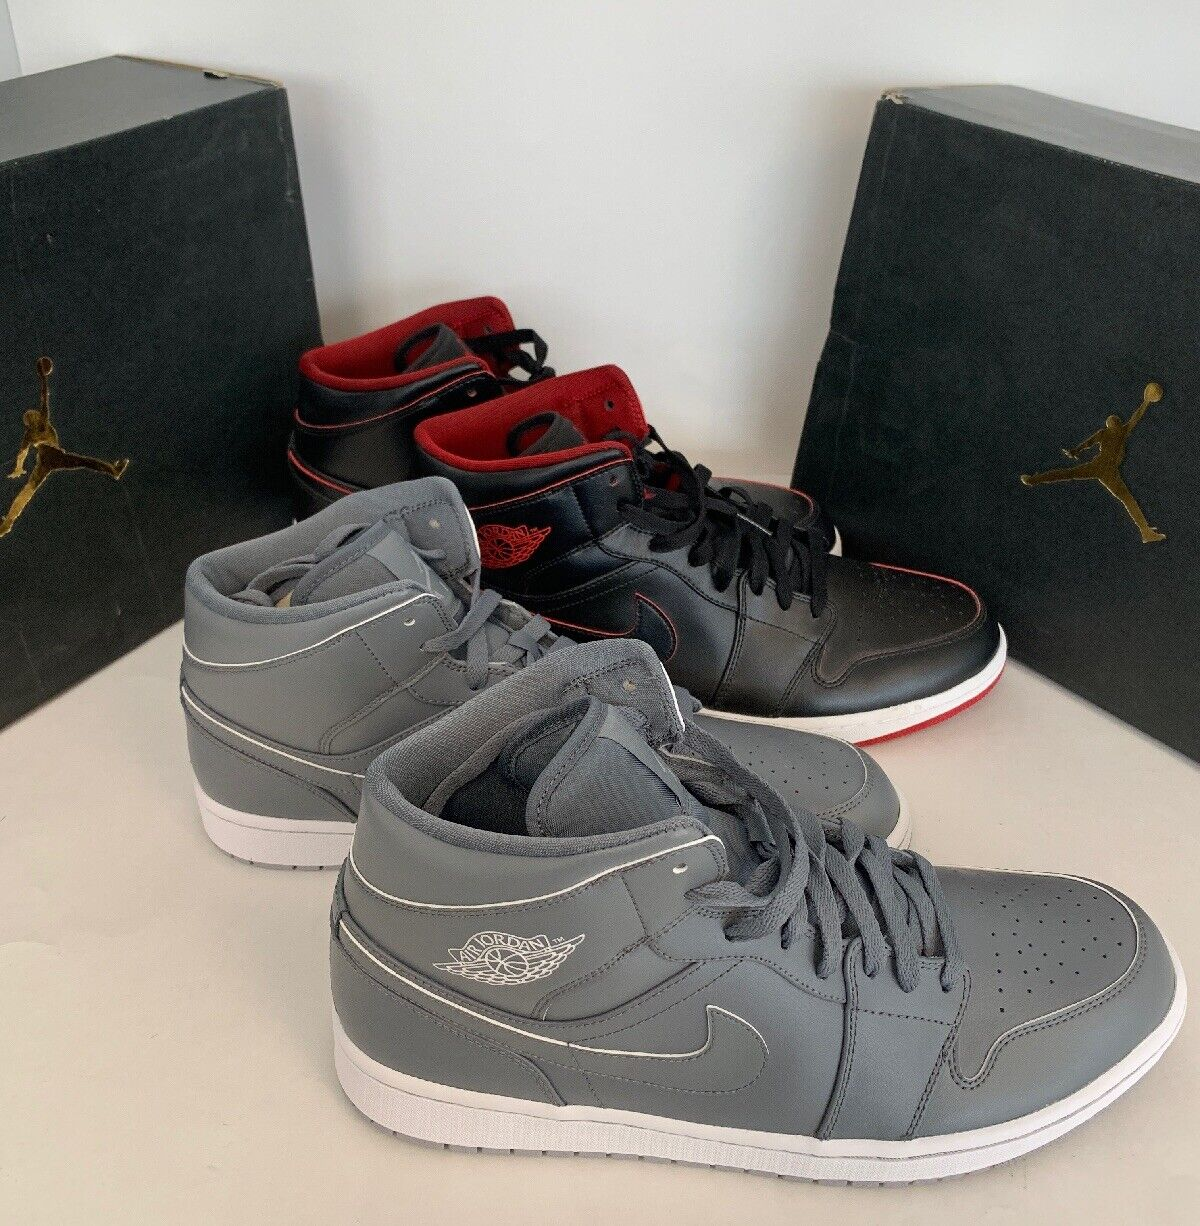 2 pairs Nike Jordan 1 Mid  Wolf Grey & Black Red Size-13 1 New, 1 Used